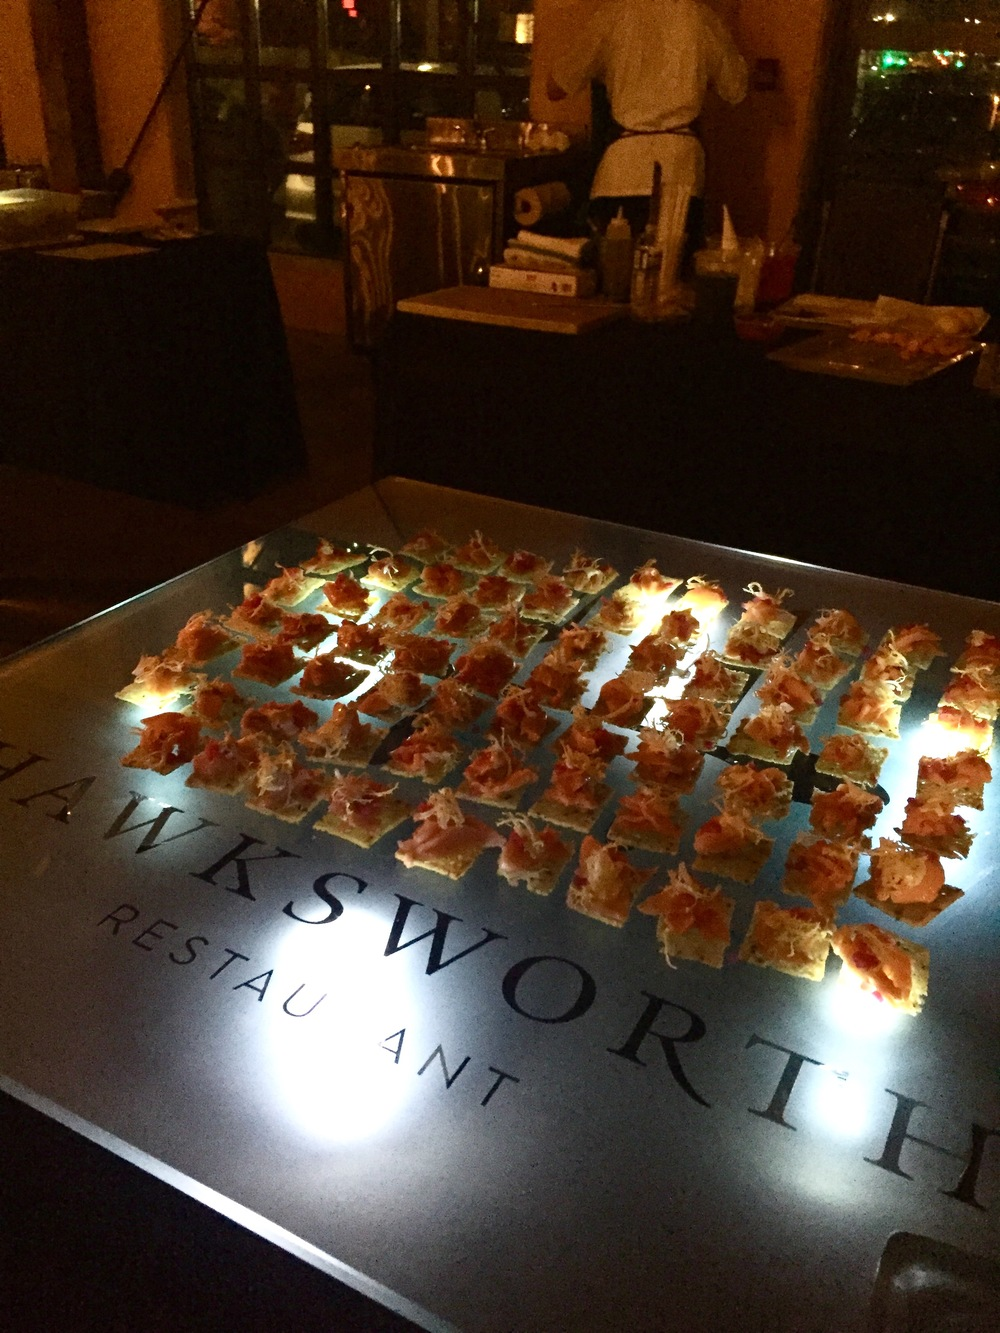 Restaurants like Hawksworth were serving amazing canapés throughout the evening.